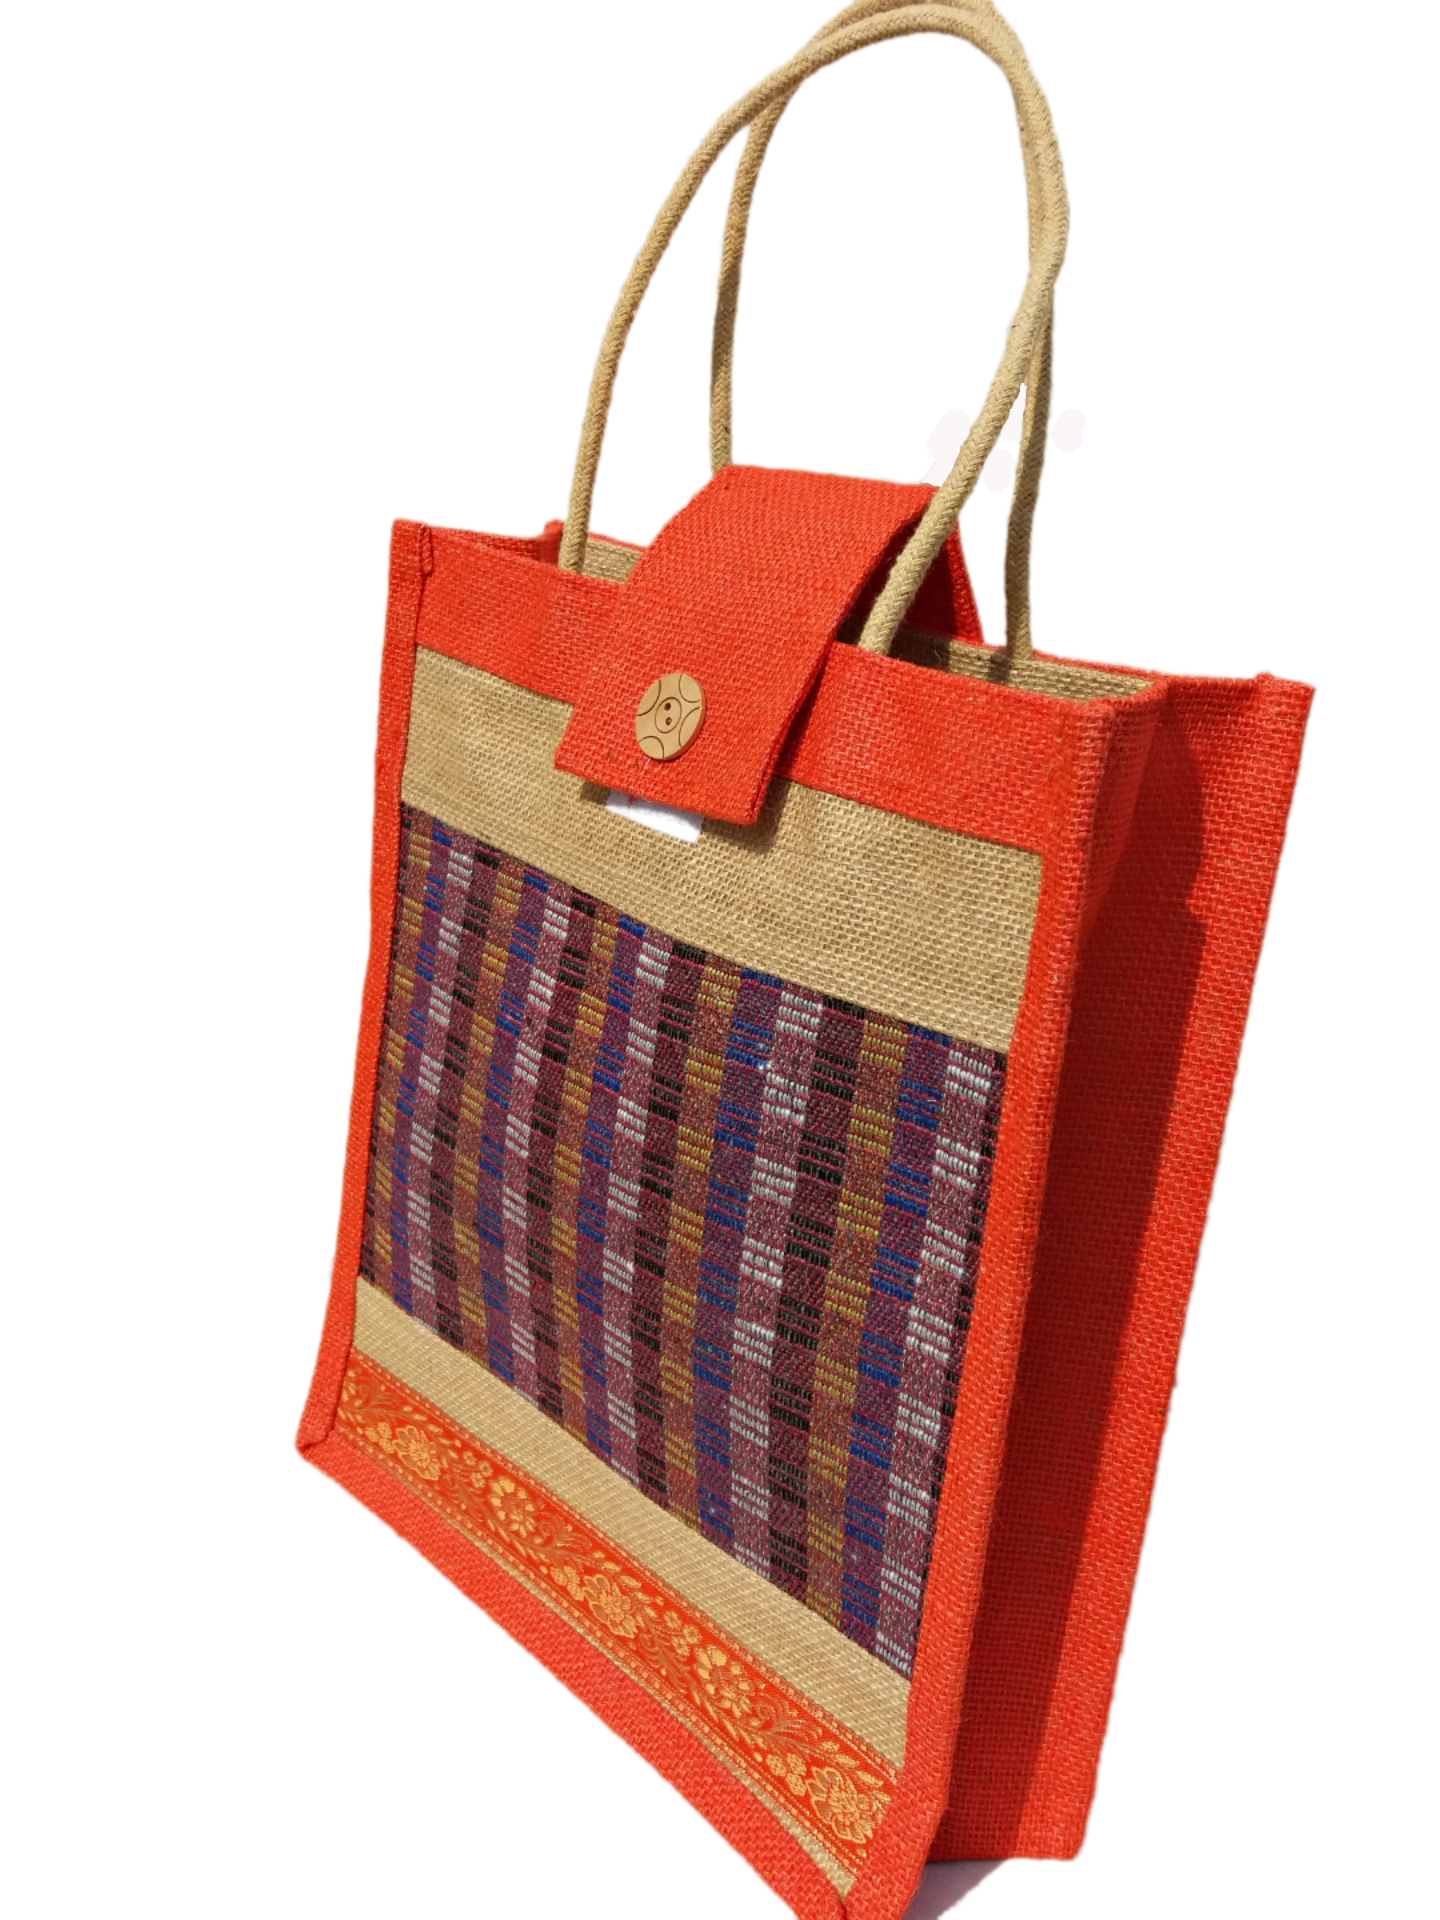 Popular Jute Lunch Bag & shopping Bag Trendy and stylesh Jute Bag all time